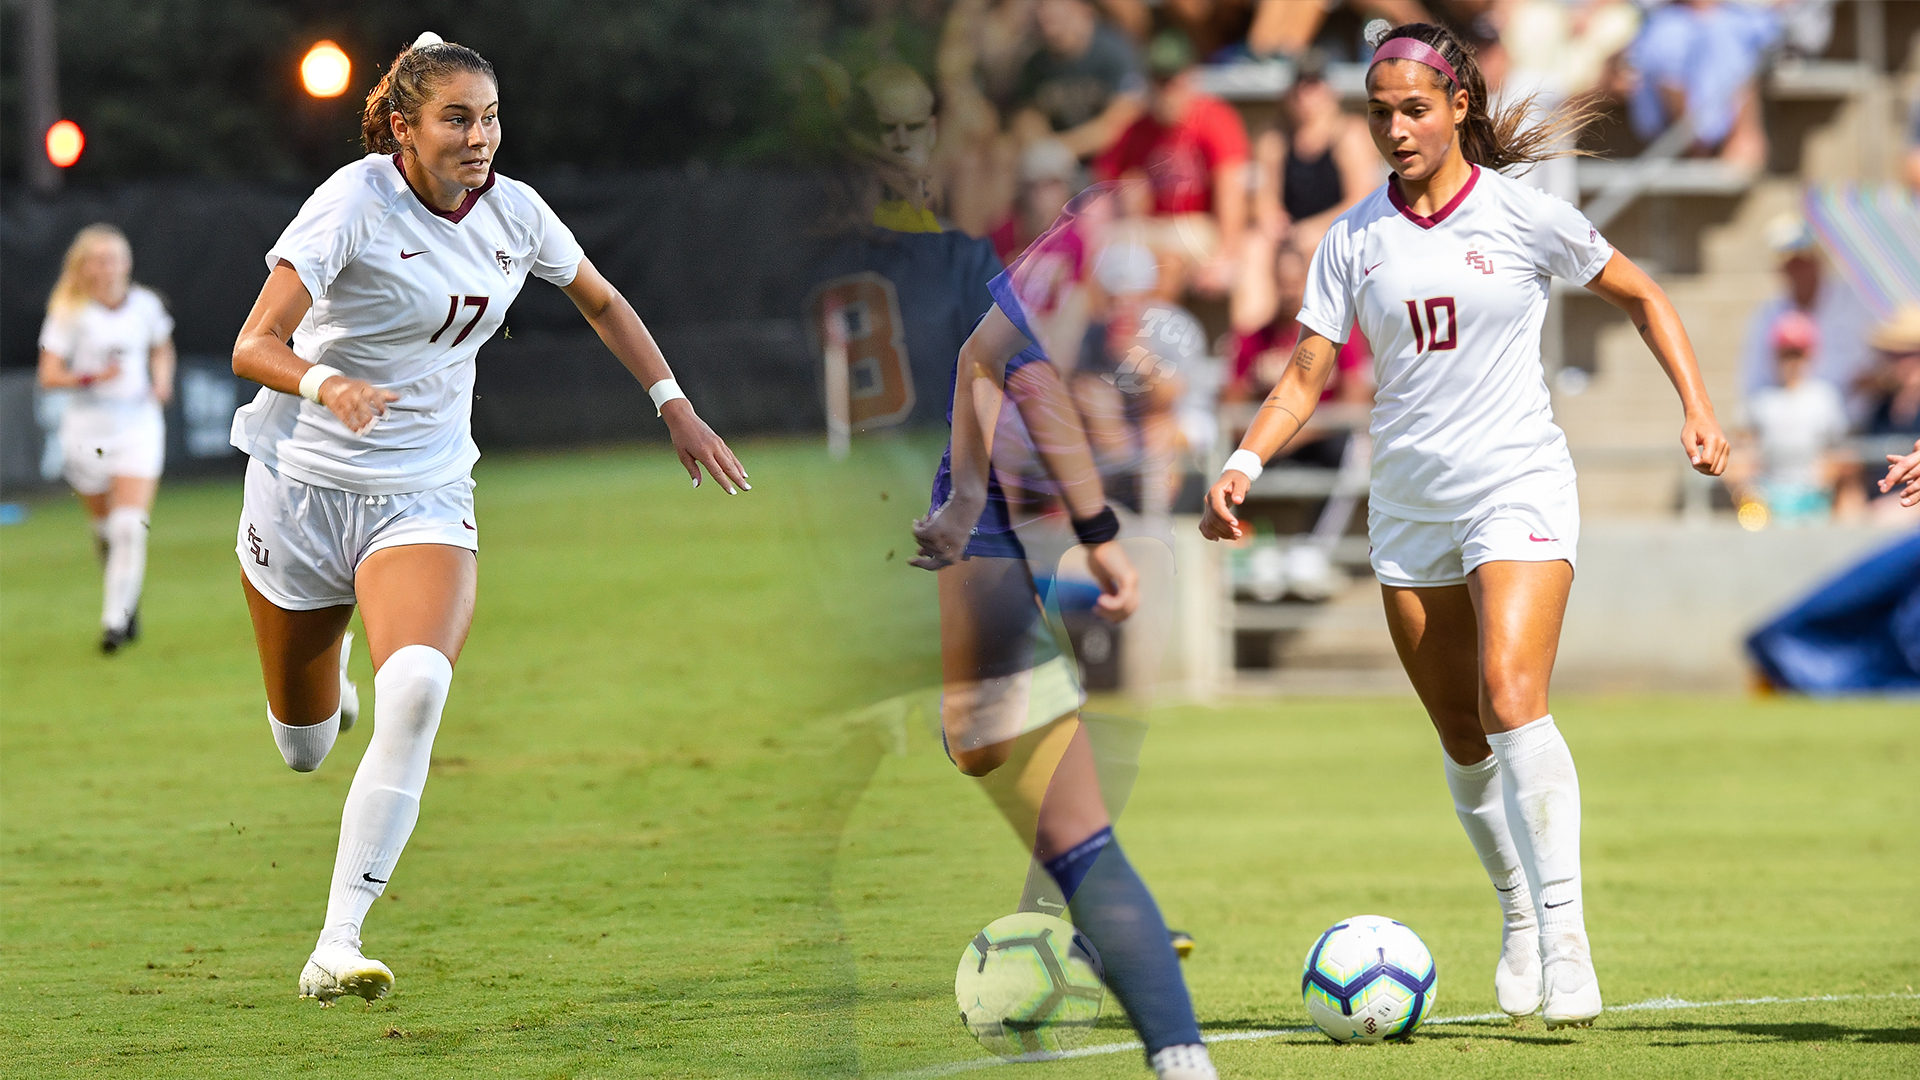 Berkely, Castellanos Named United Soccer Coaches All-Americans